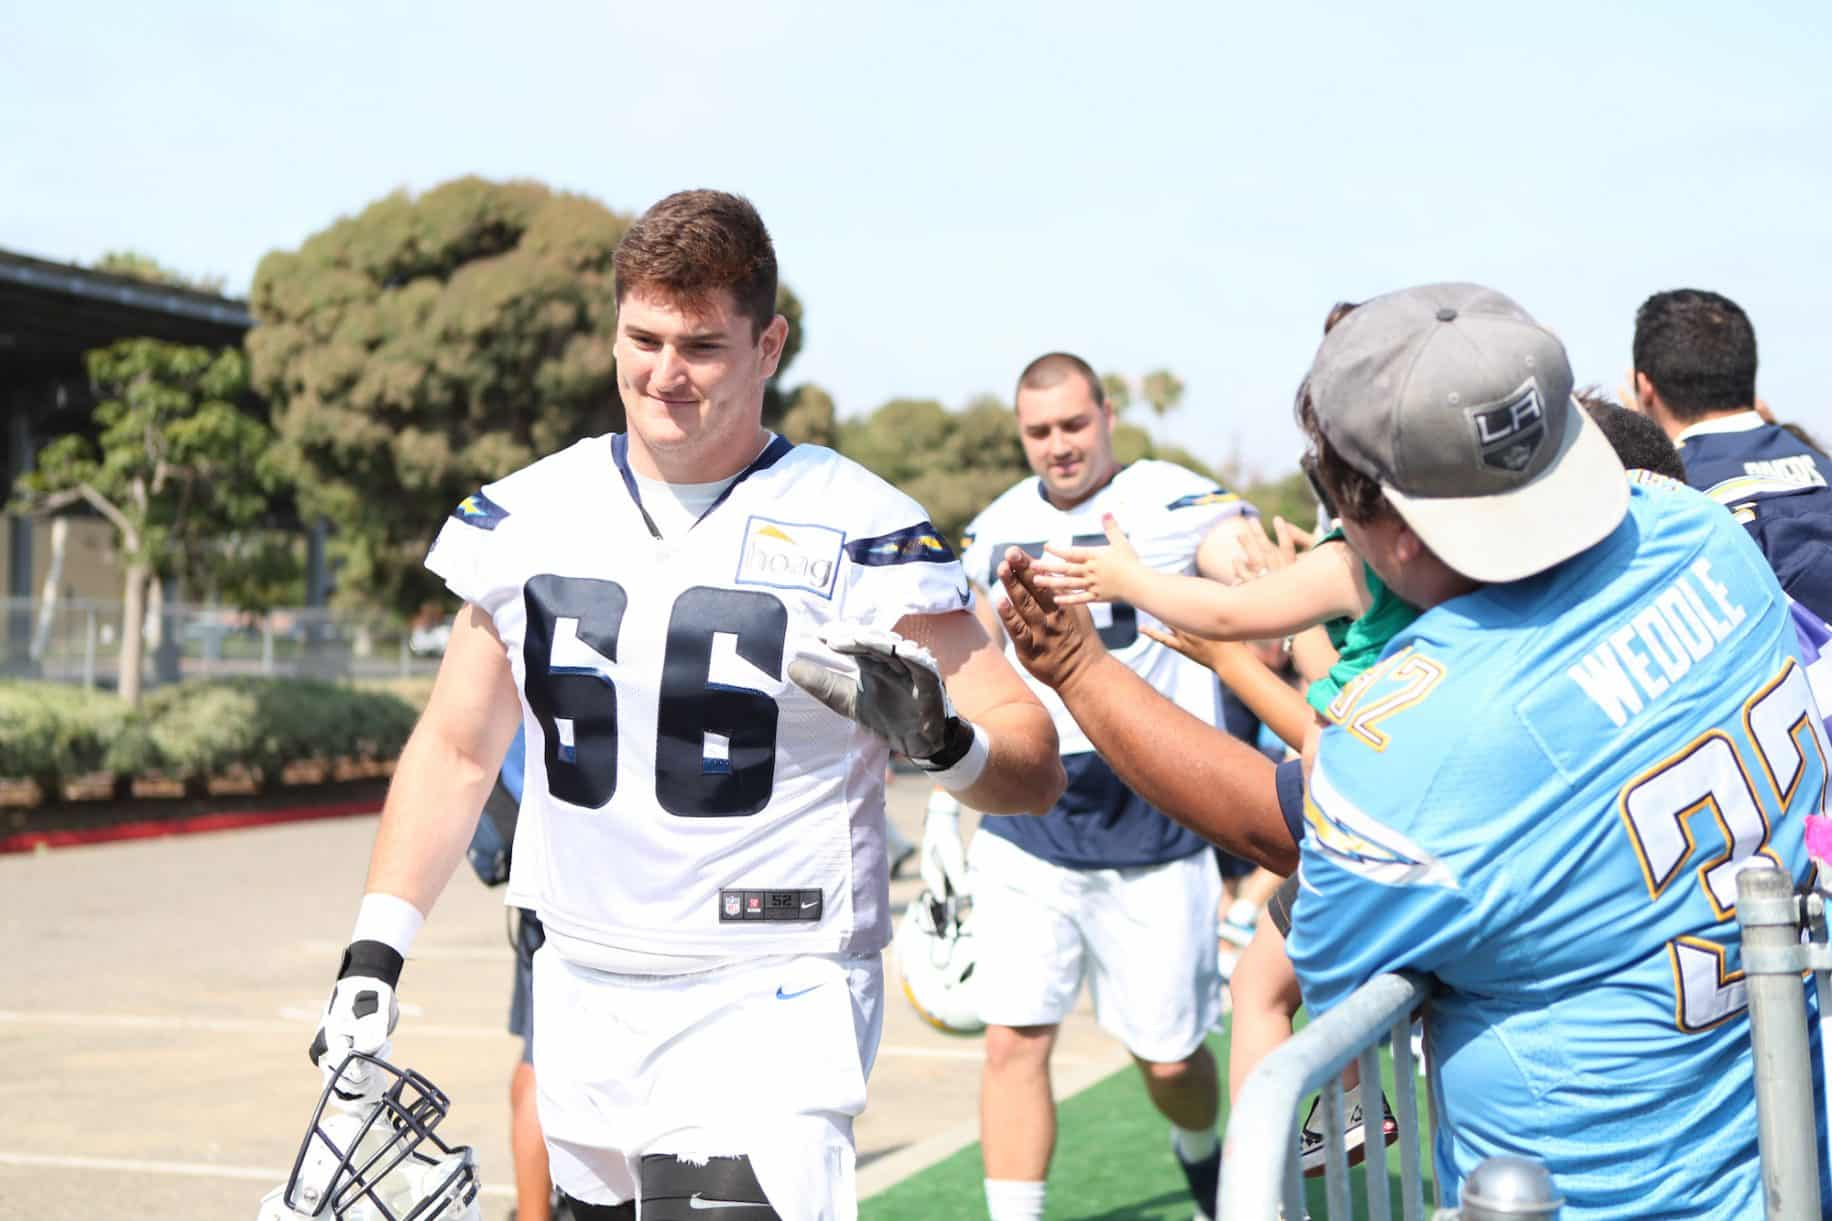 Chargers Position Battles To Watch: The Top 5